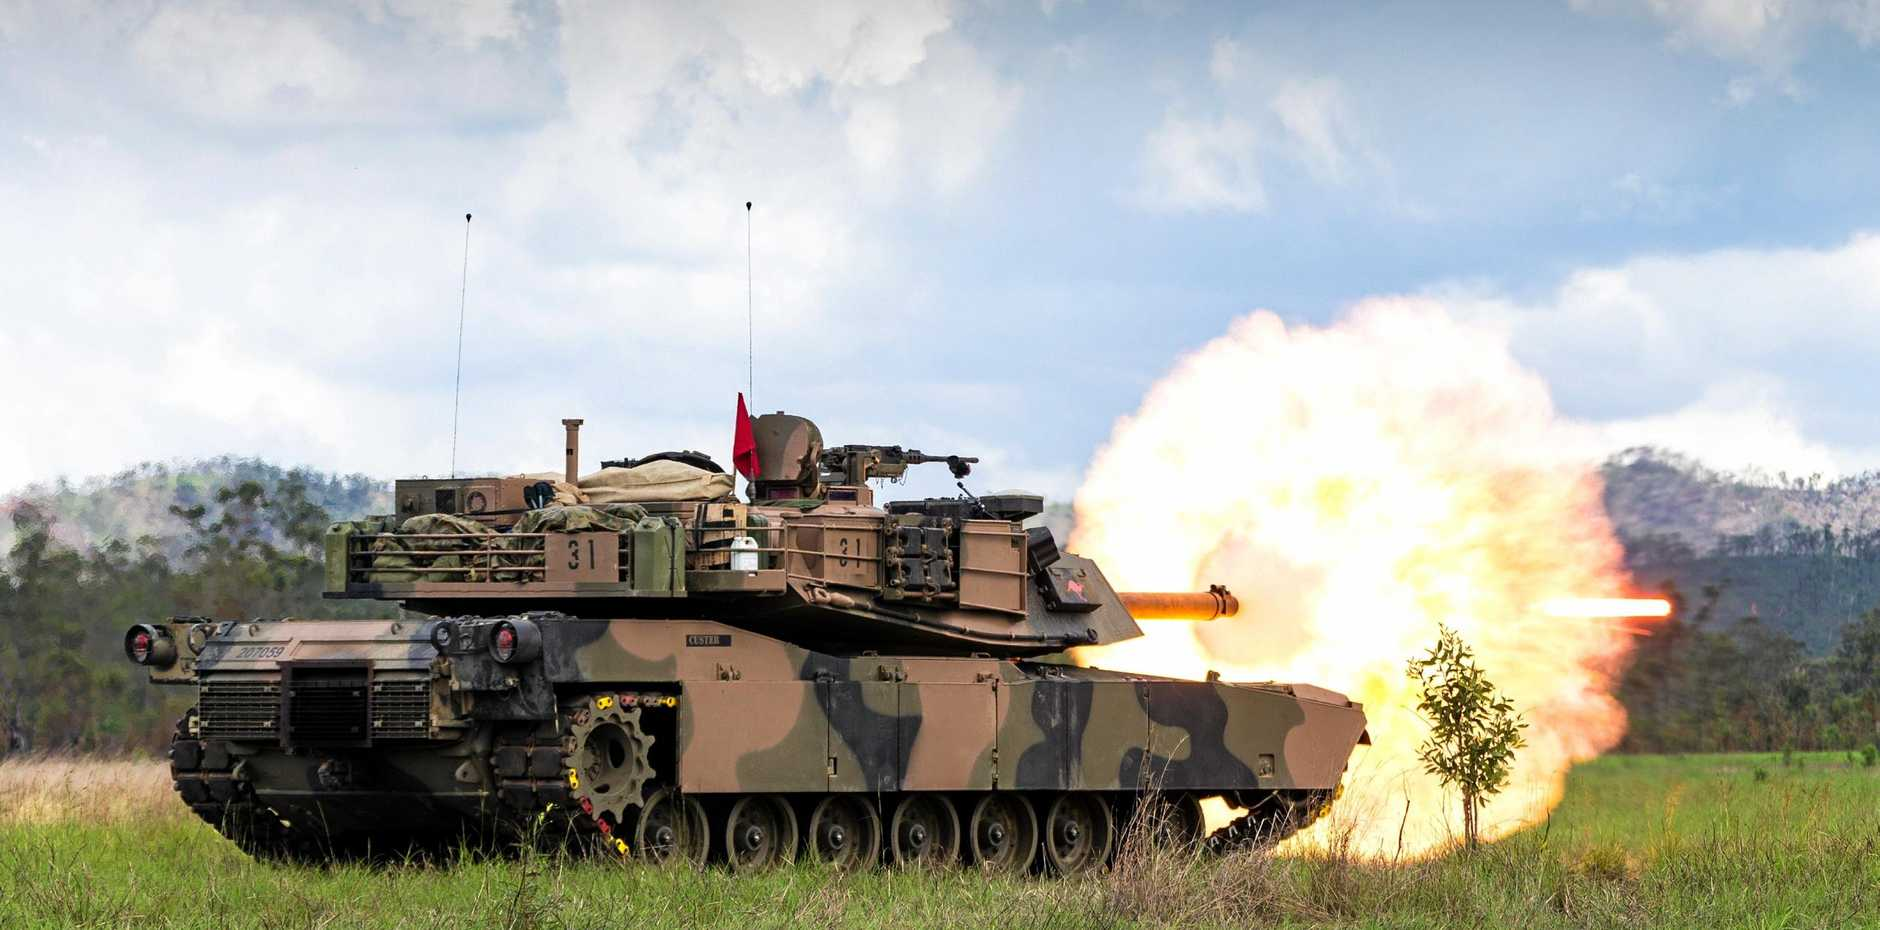 7th Combat Brigade fires its main gun during a live fire practice at Shoalwater Bay Training Area in 2017.